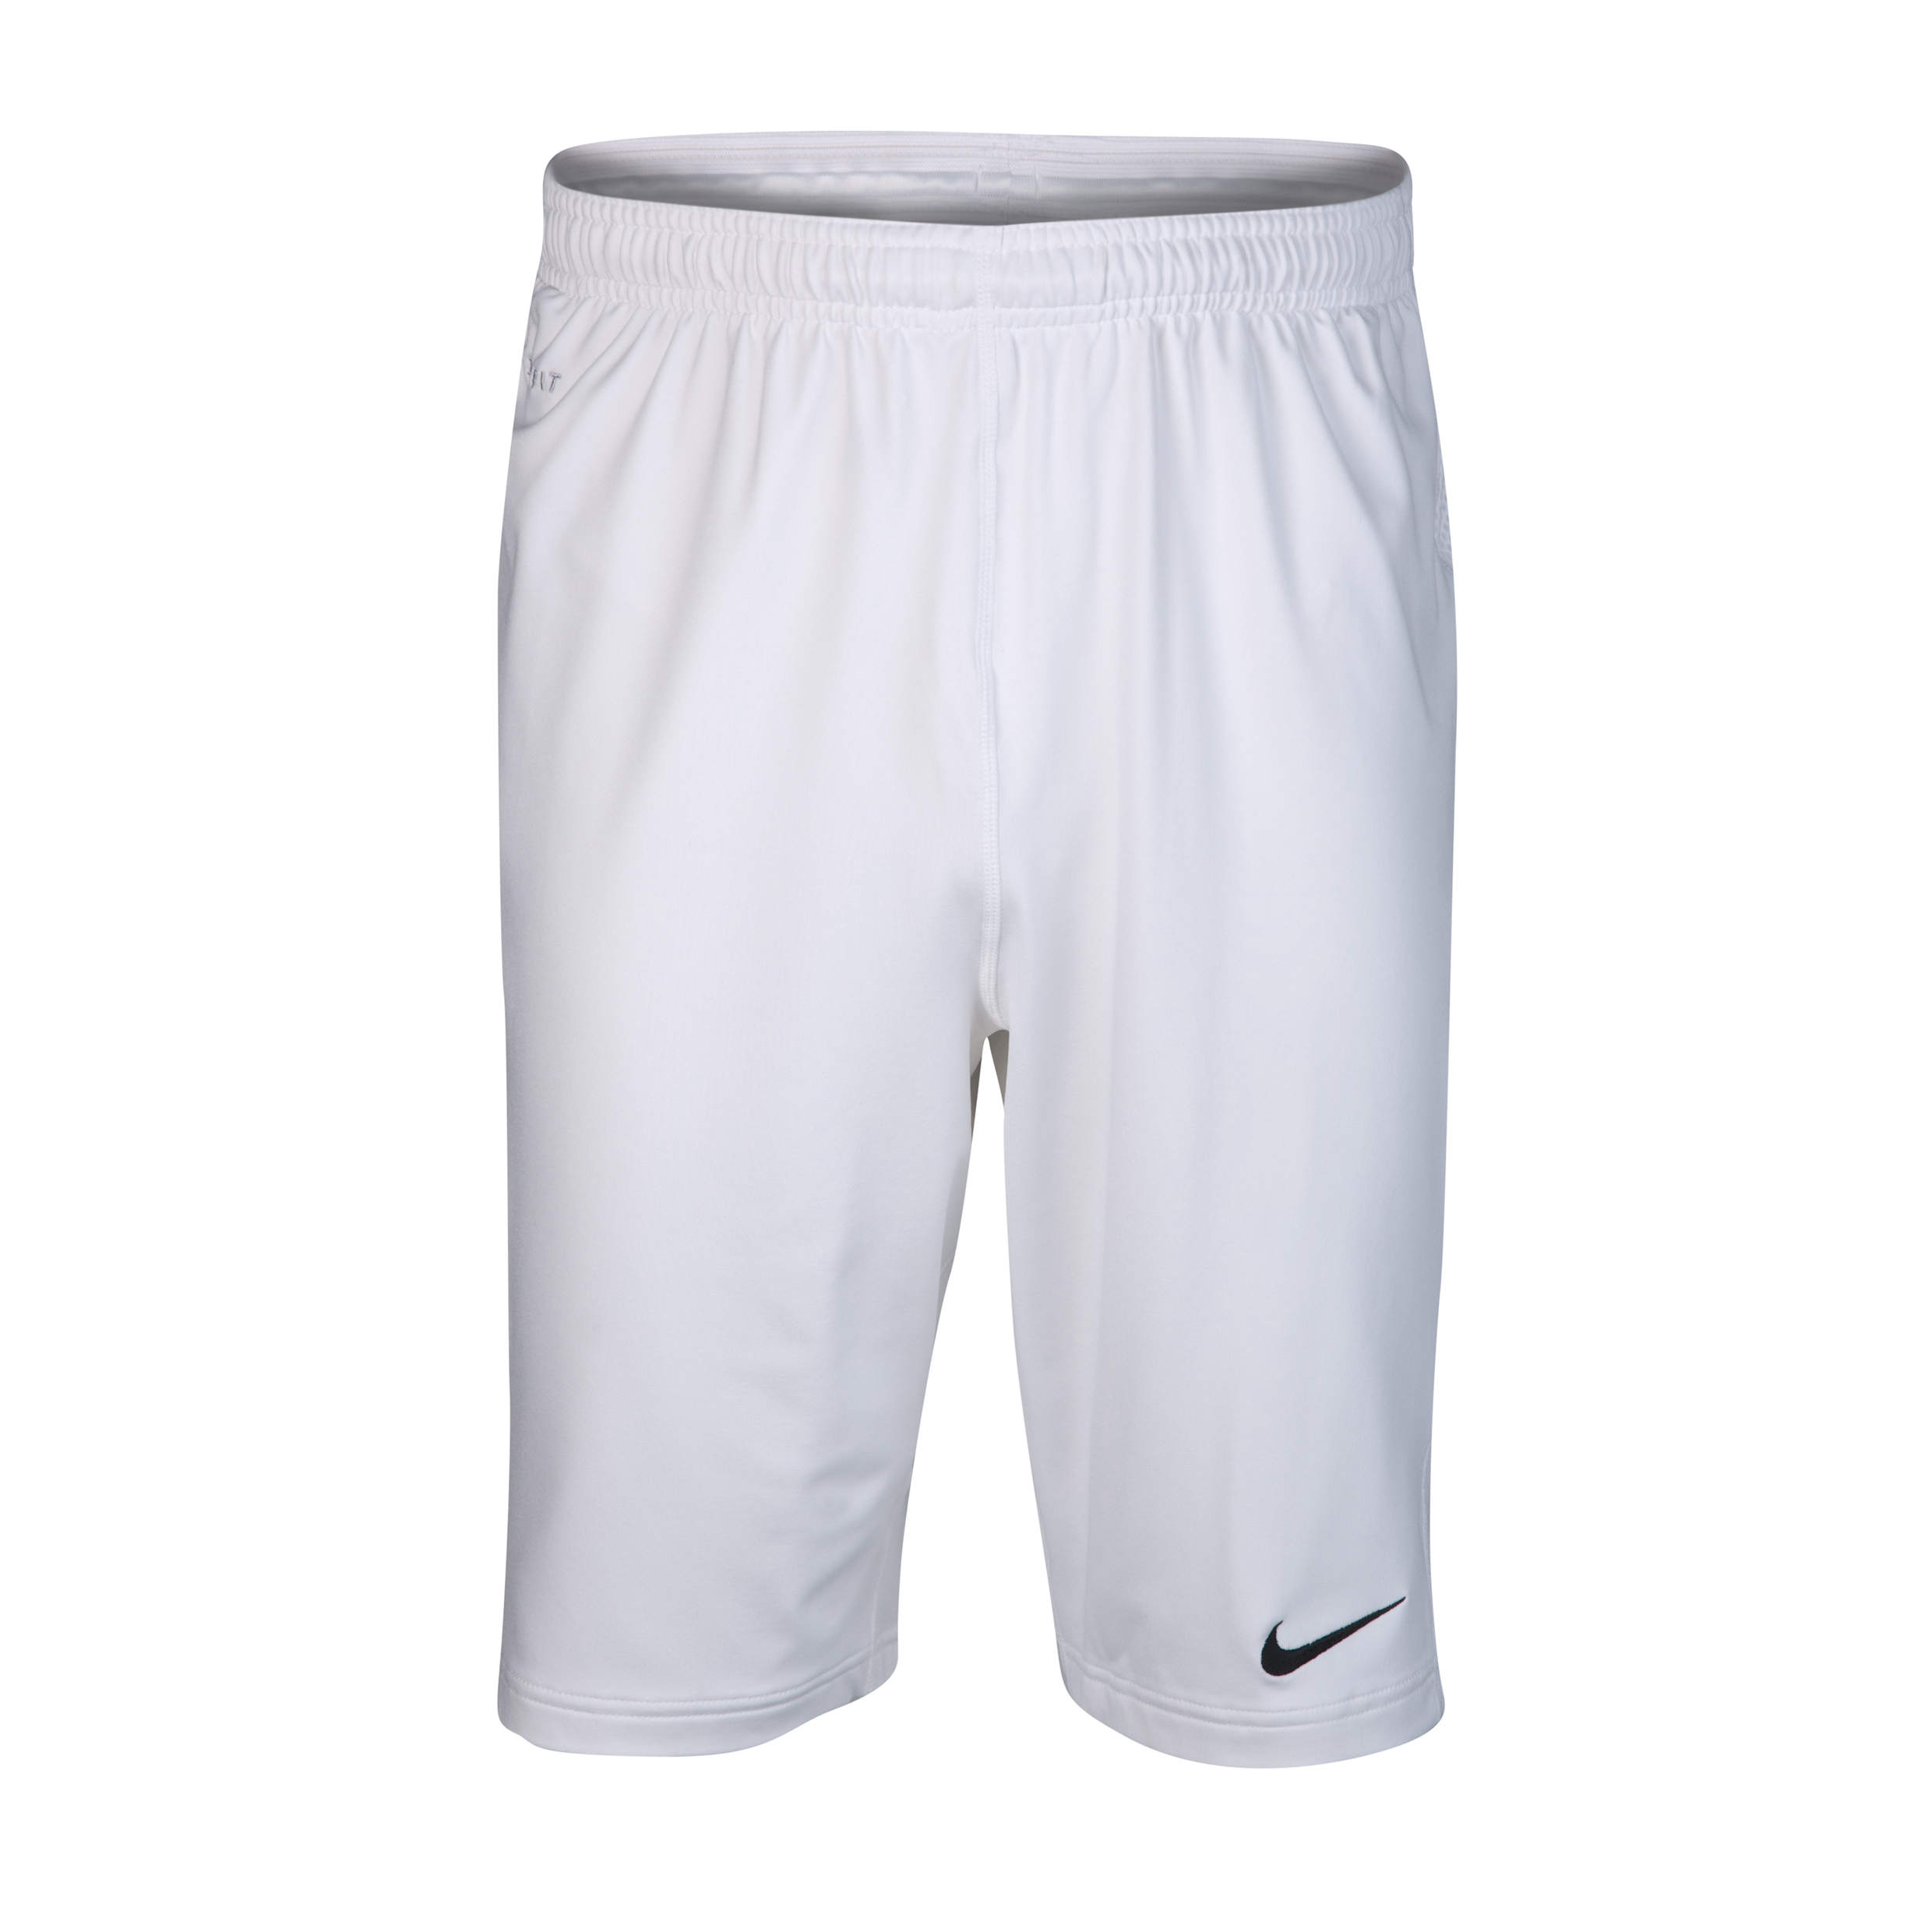 Nike Elite Long Woven Short - White/Black